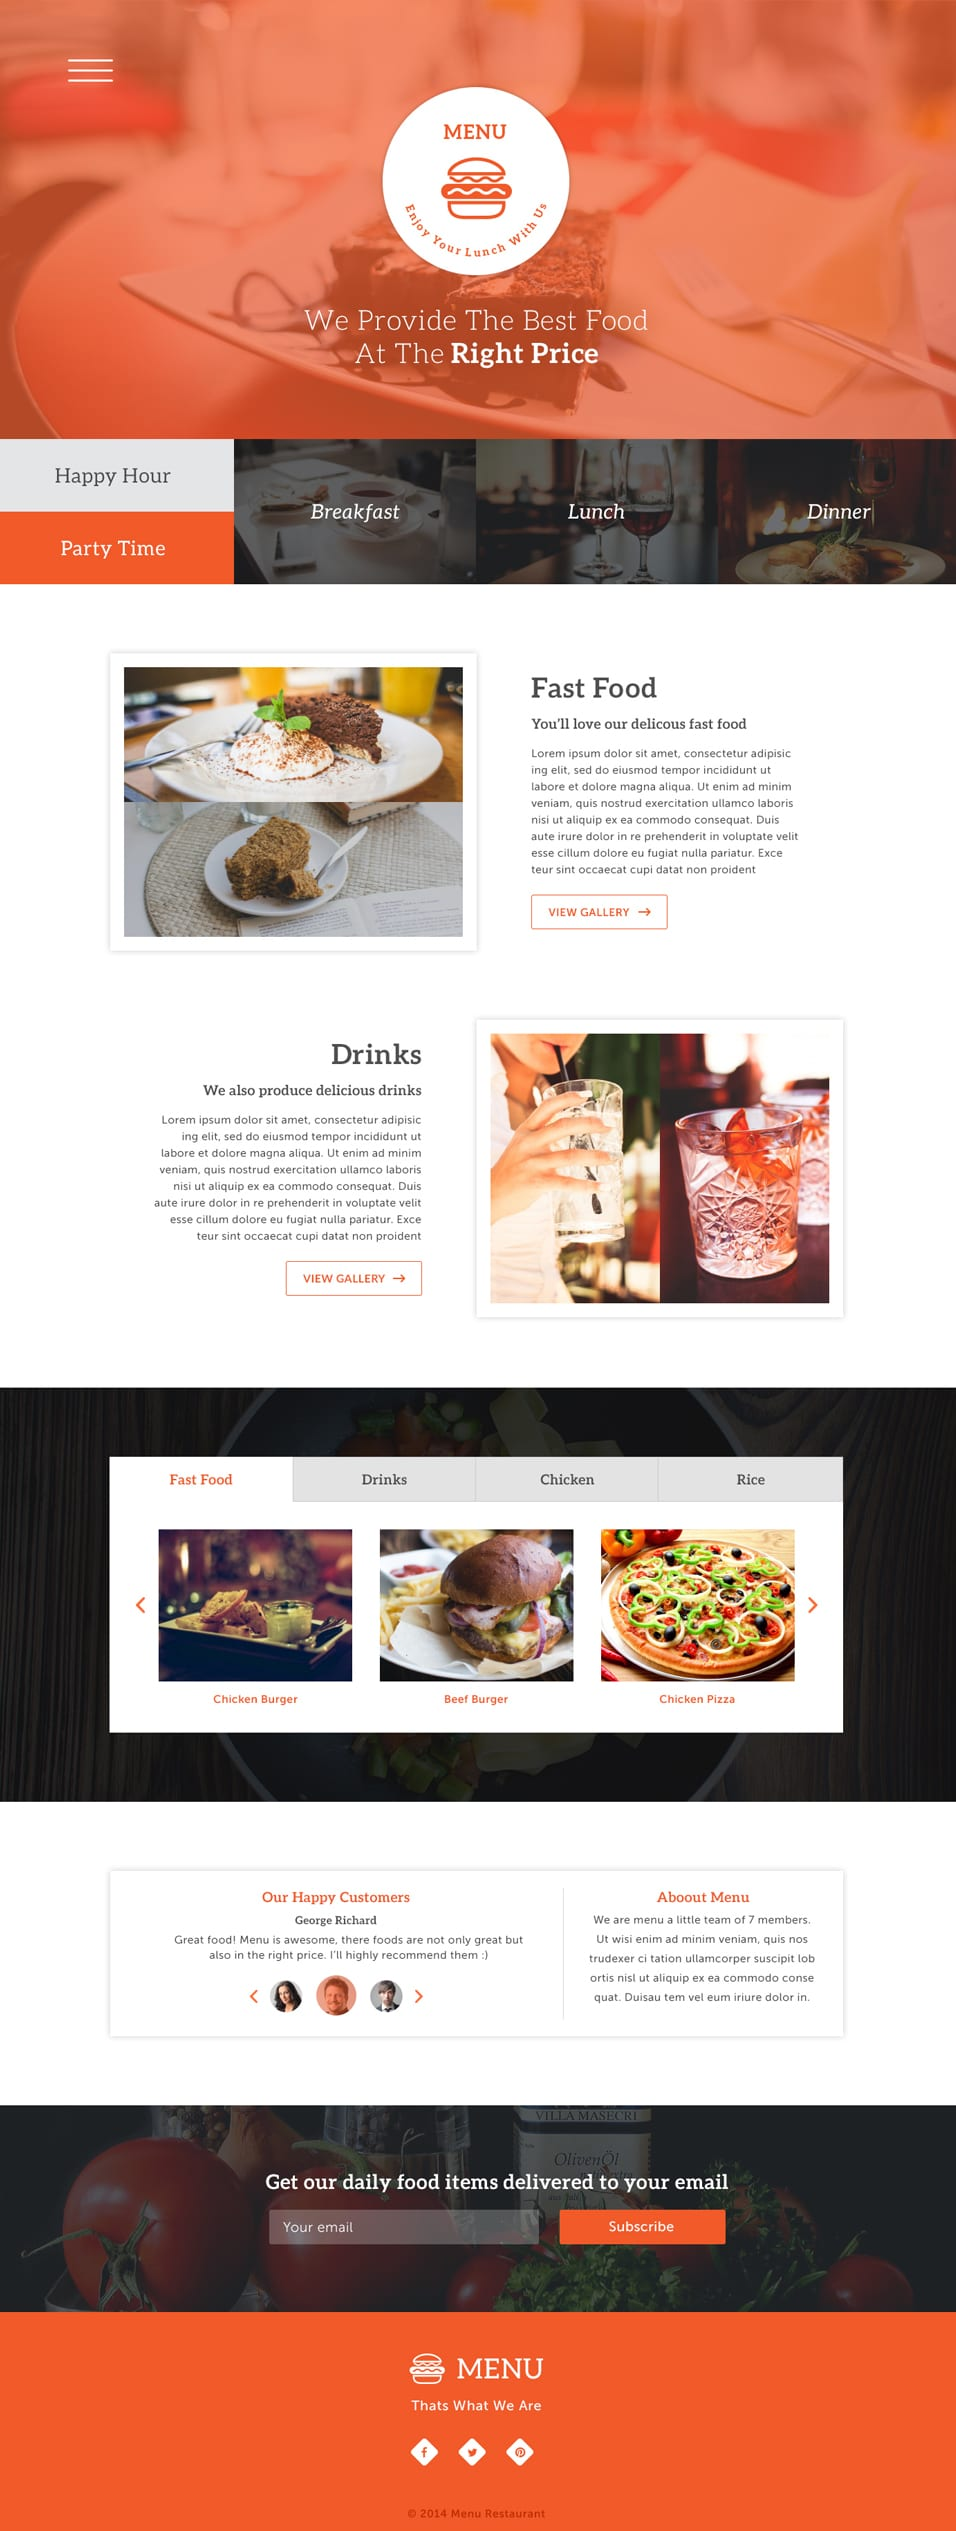 single page menu template